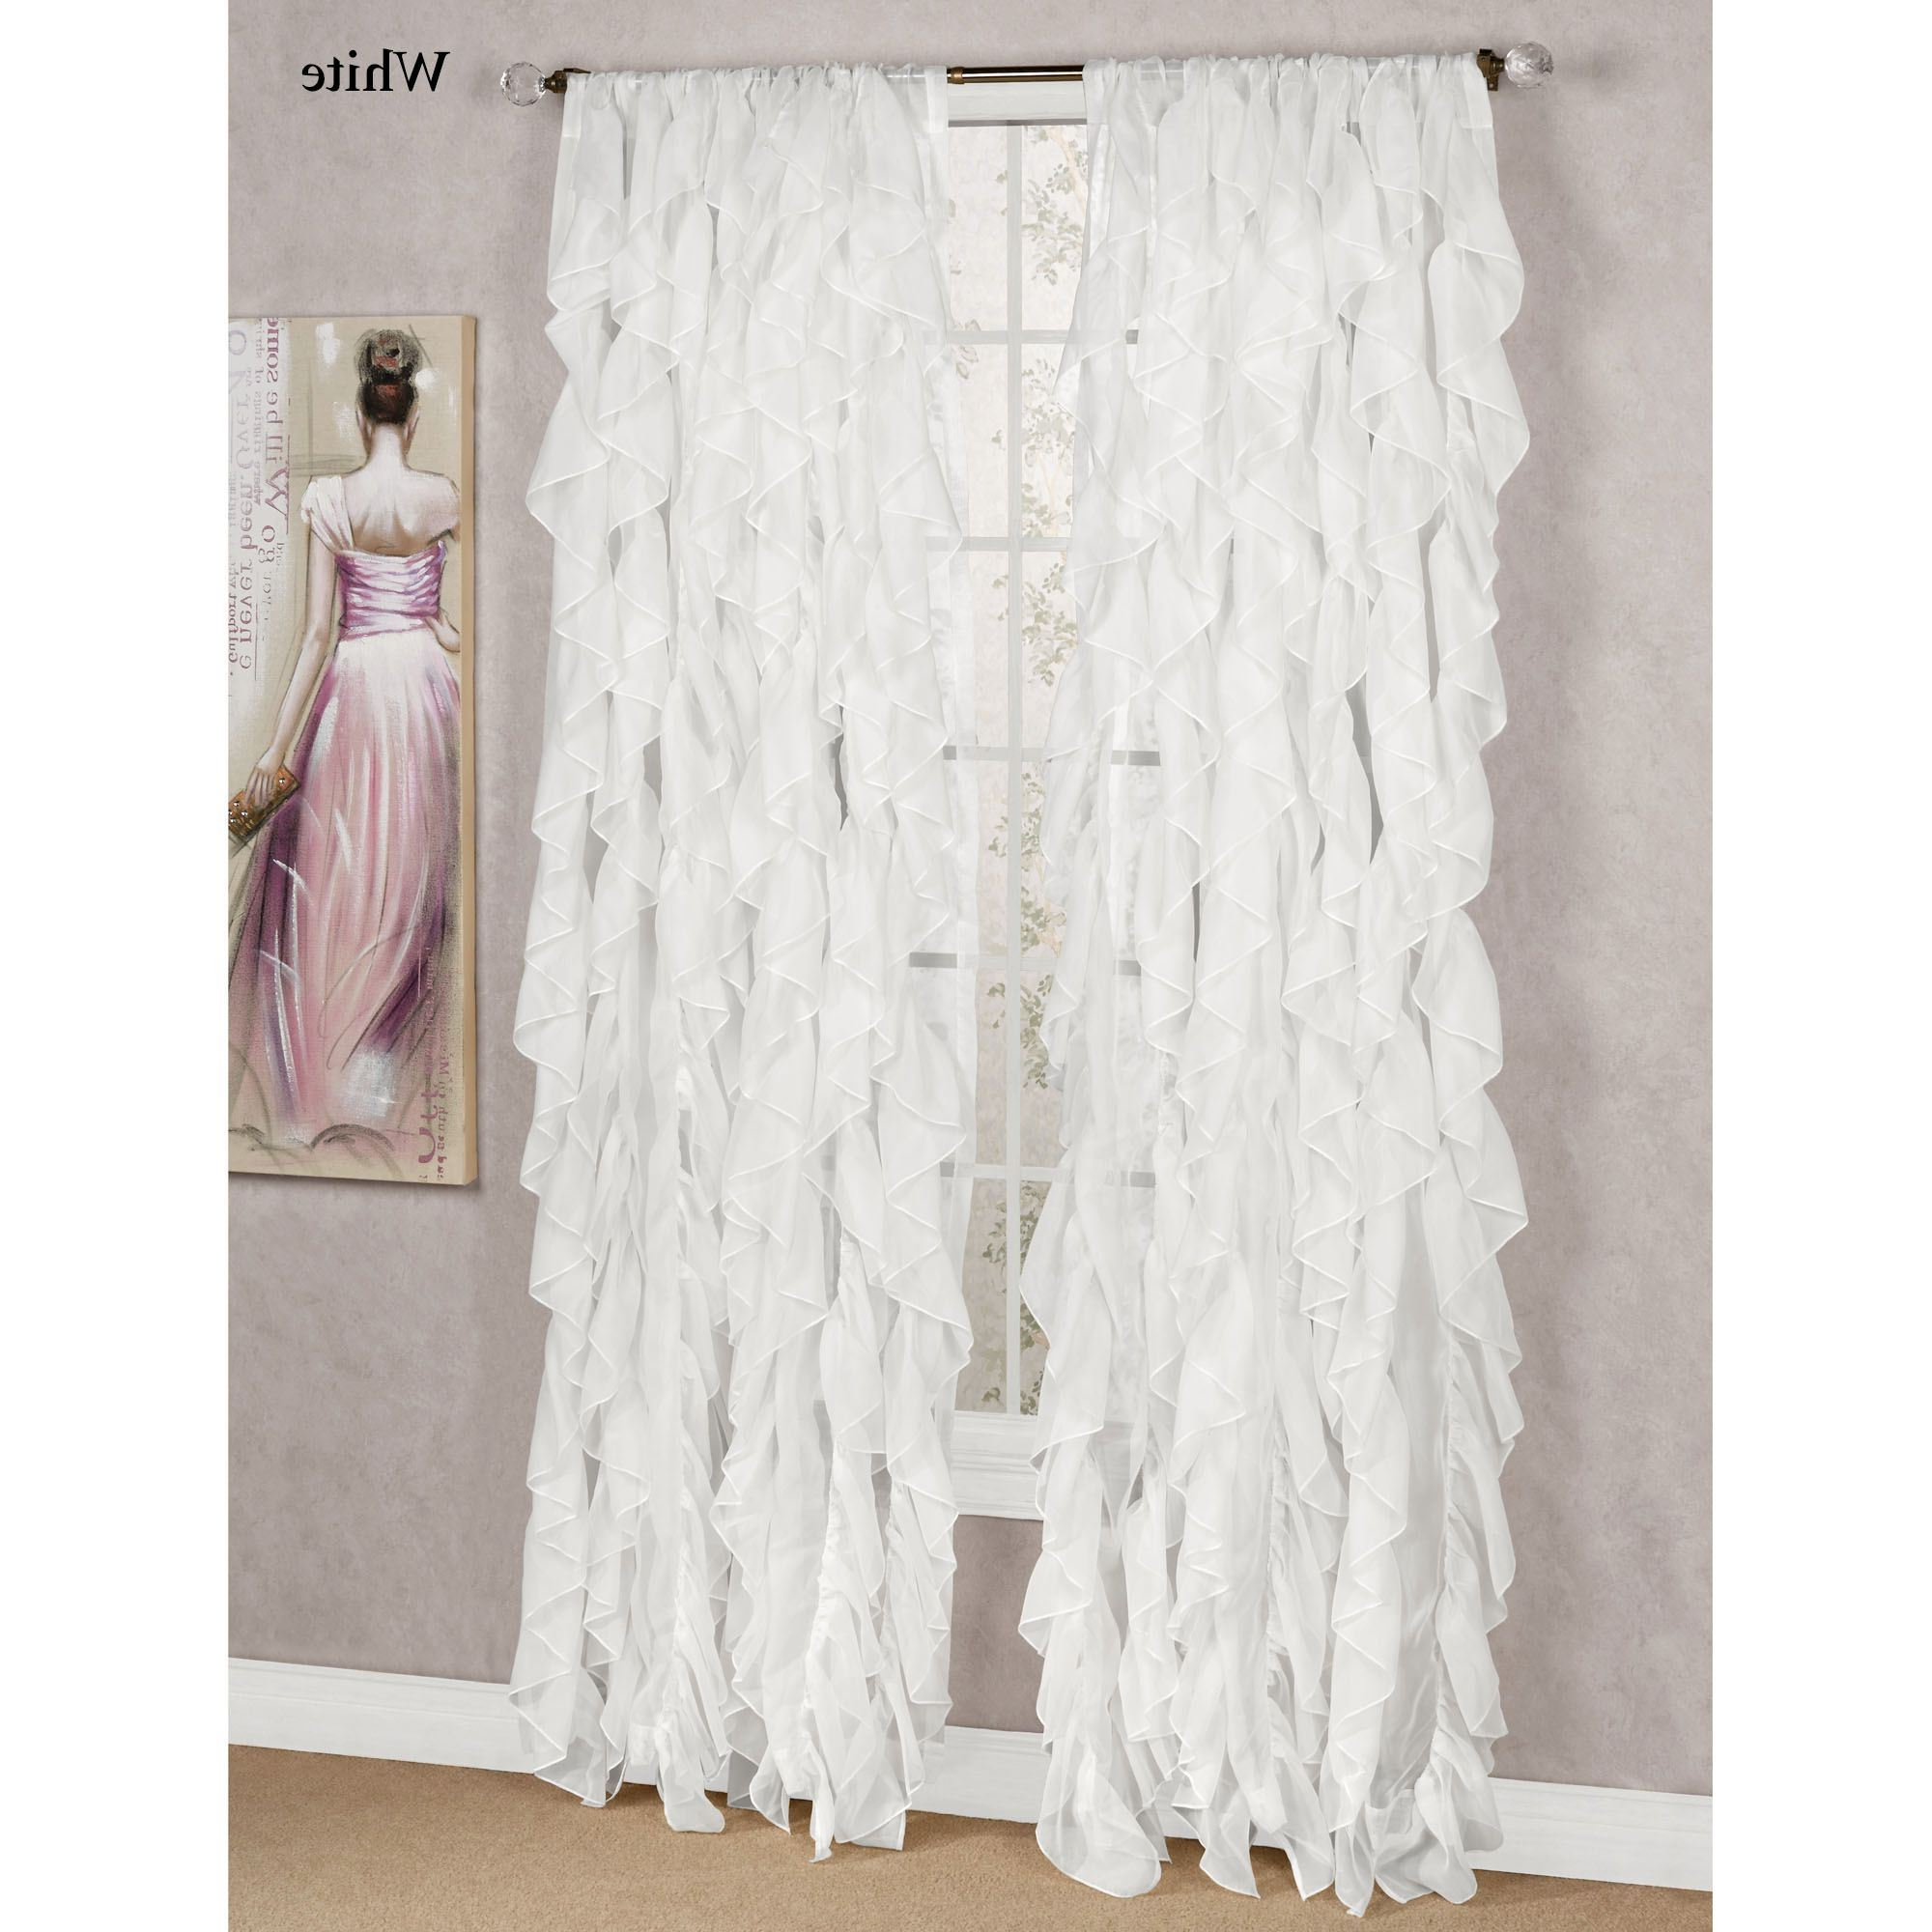 Popular Sheer Voile Ruffled Tier Window Curtain Panels Throughout Cascade Sheer Voile Ruffled Window Treatment (View 7 of 20)